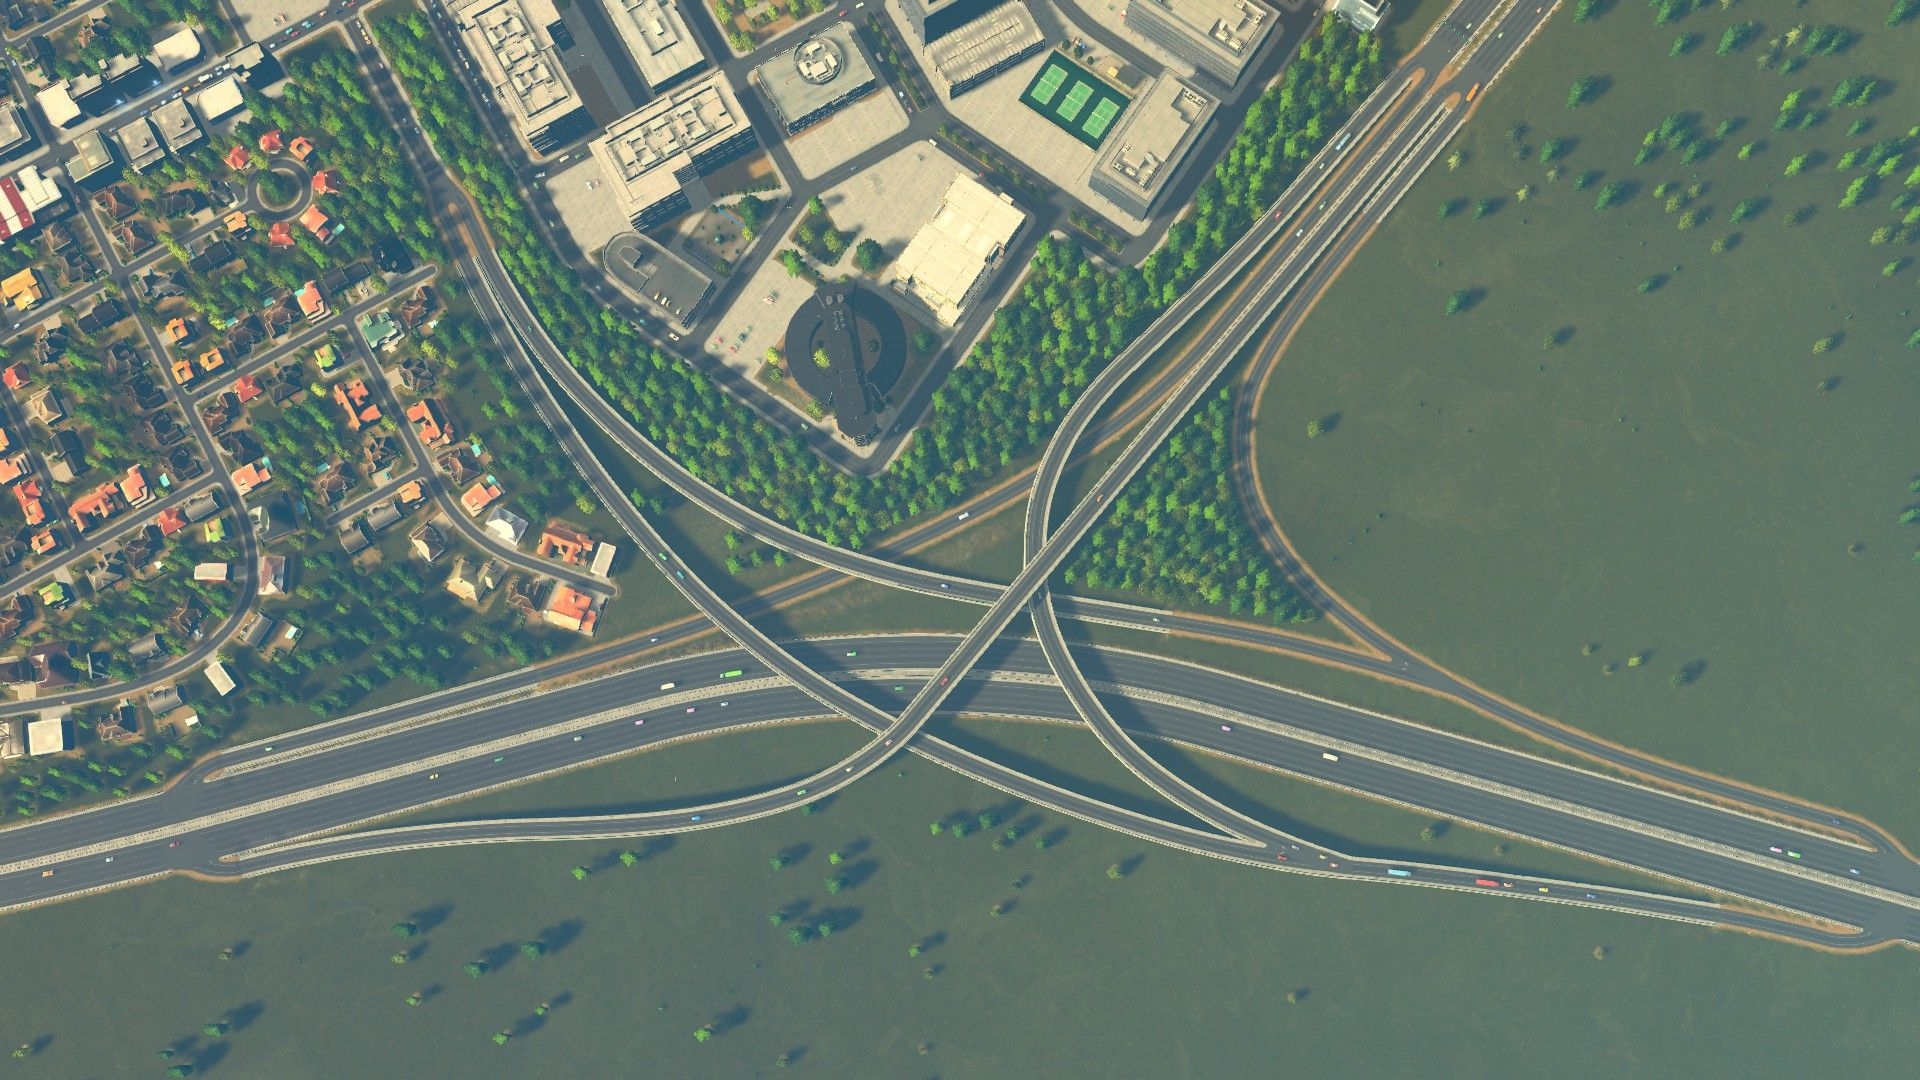 20 Simcity 4ever Ideas In 2021 City Skylines Game City Layout City Skyline